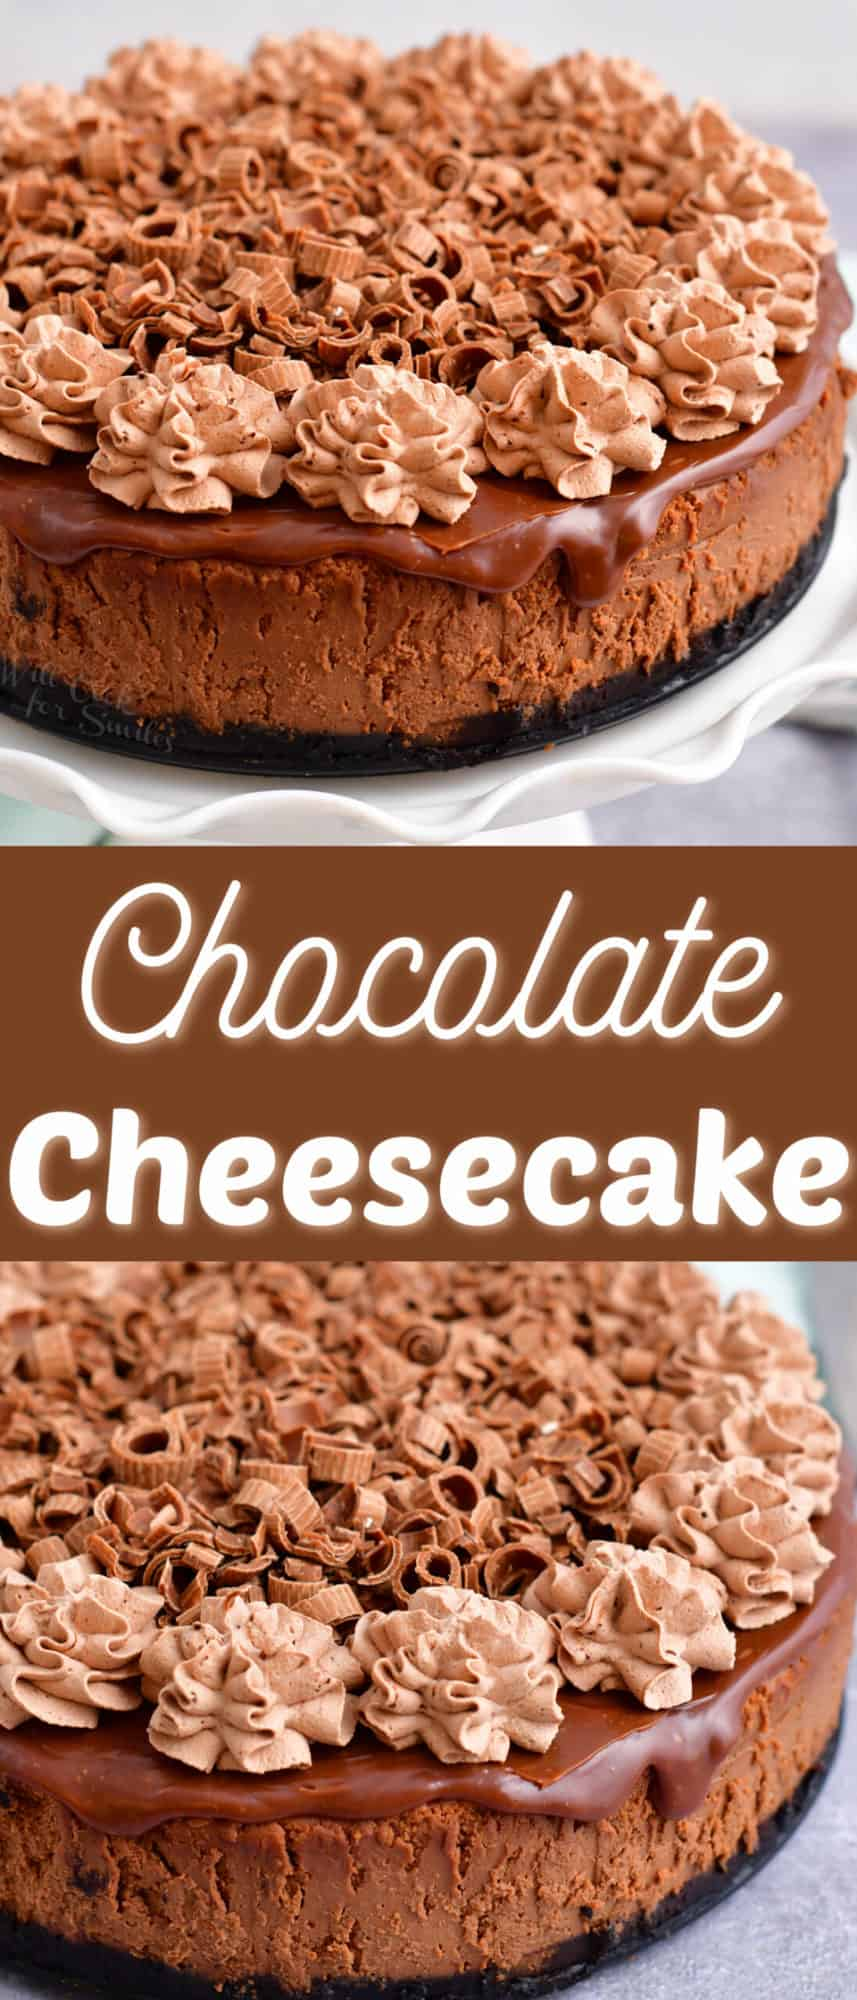 collage image of whole chocolate cheesecake decorated and title in the middle